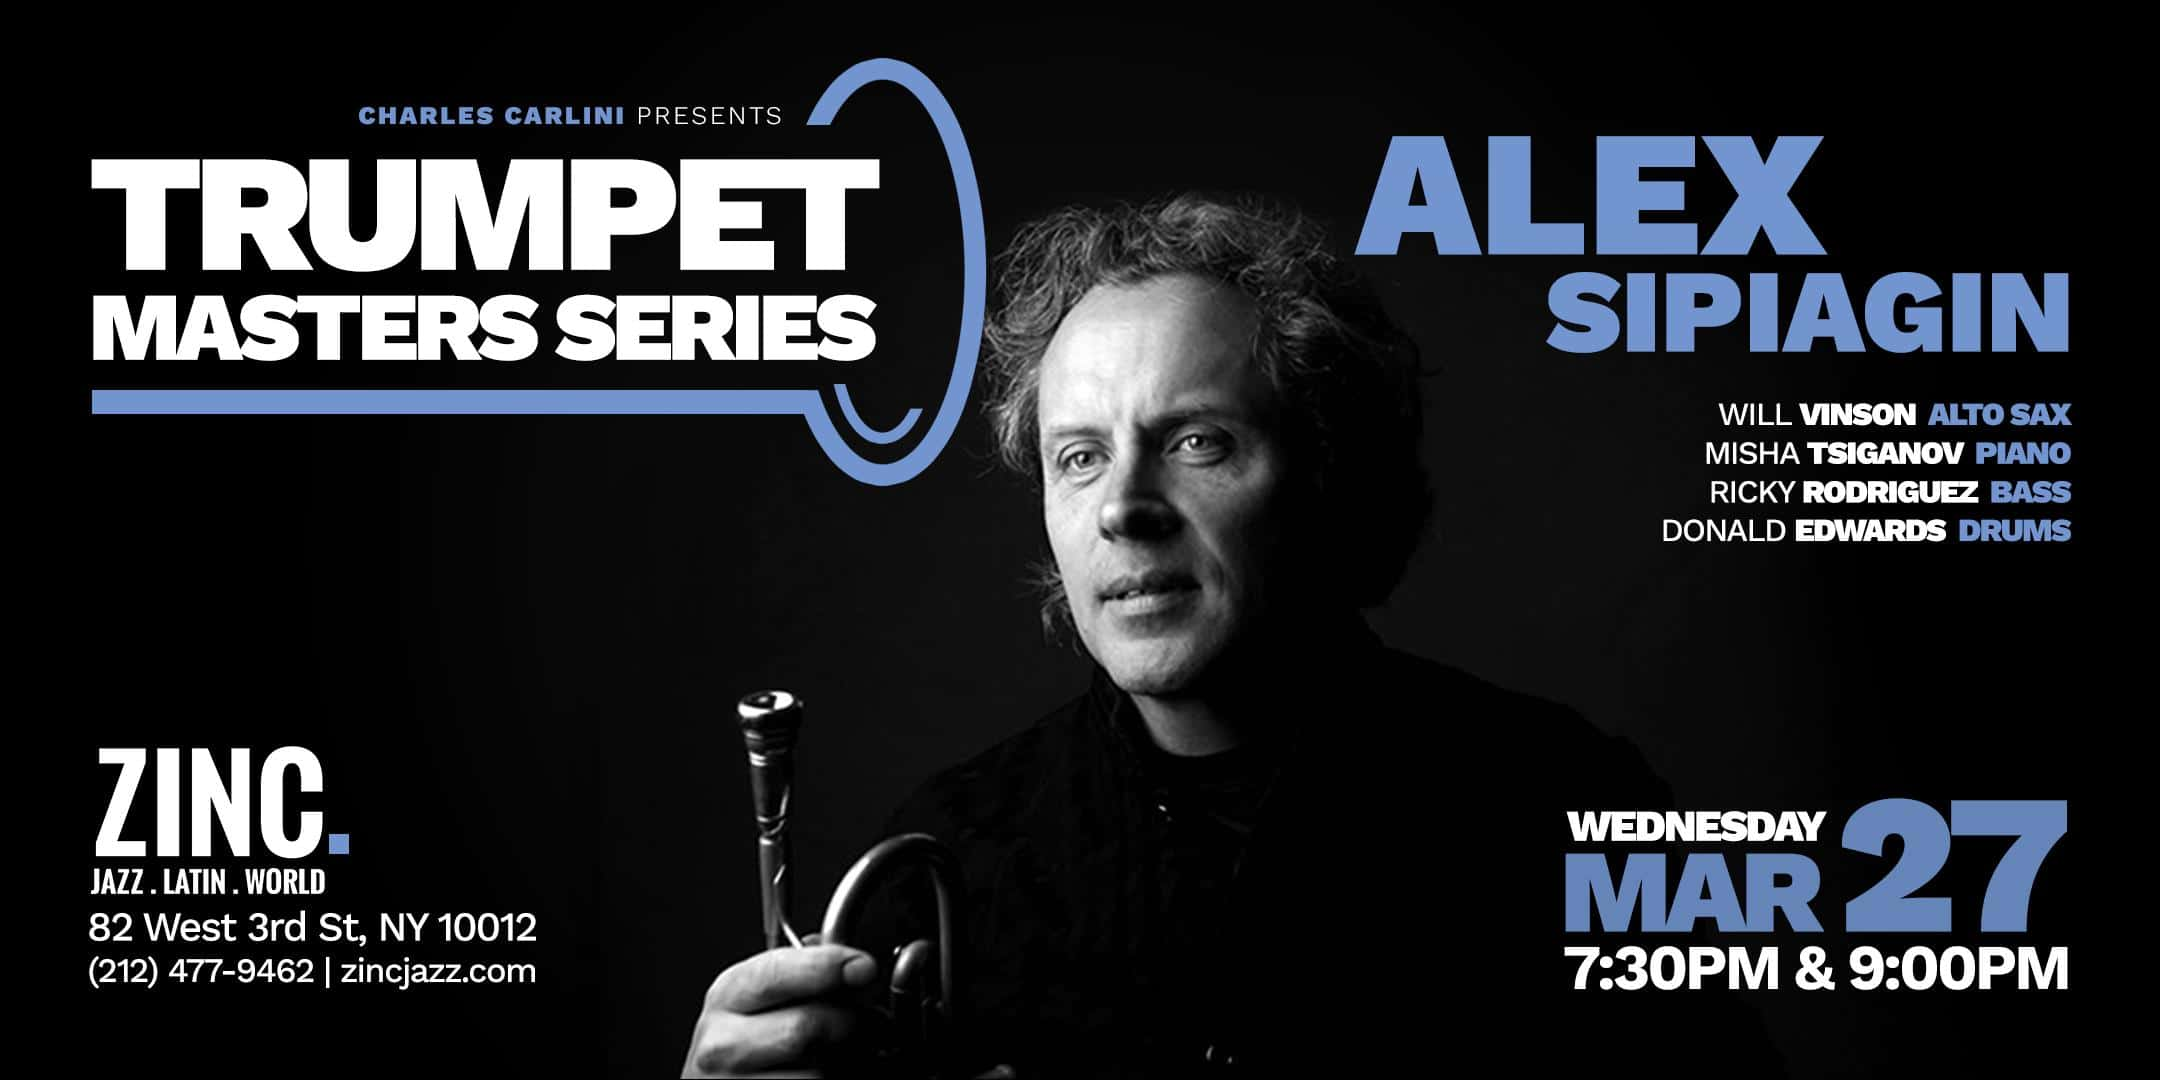 Trumpet Masters Series: Alex Sipiagin